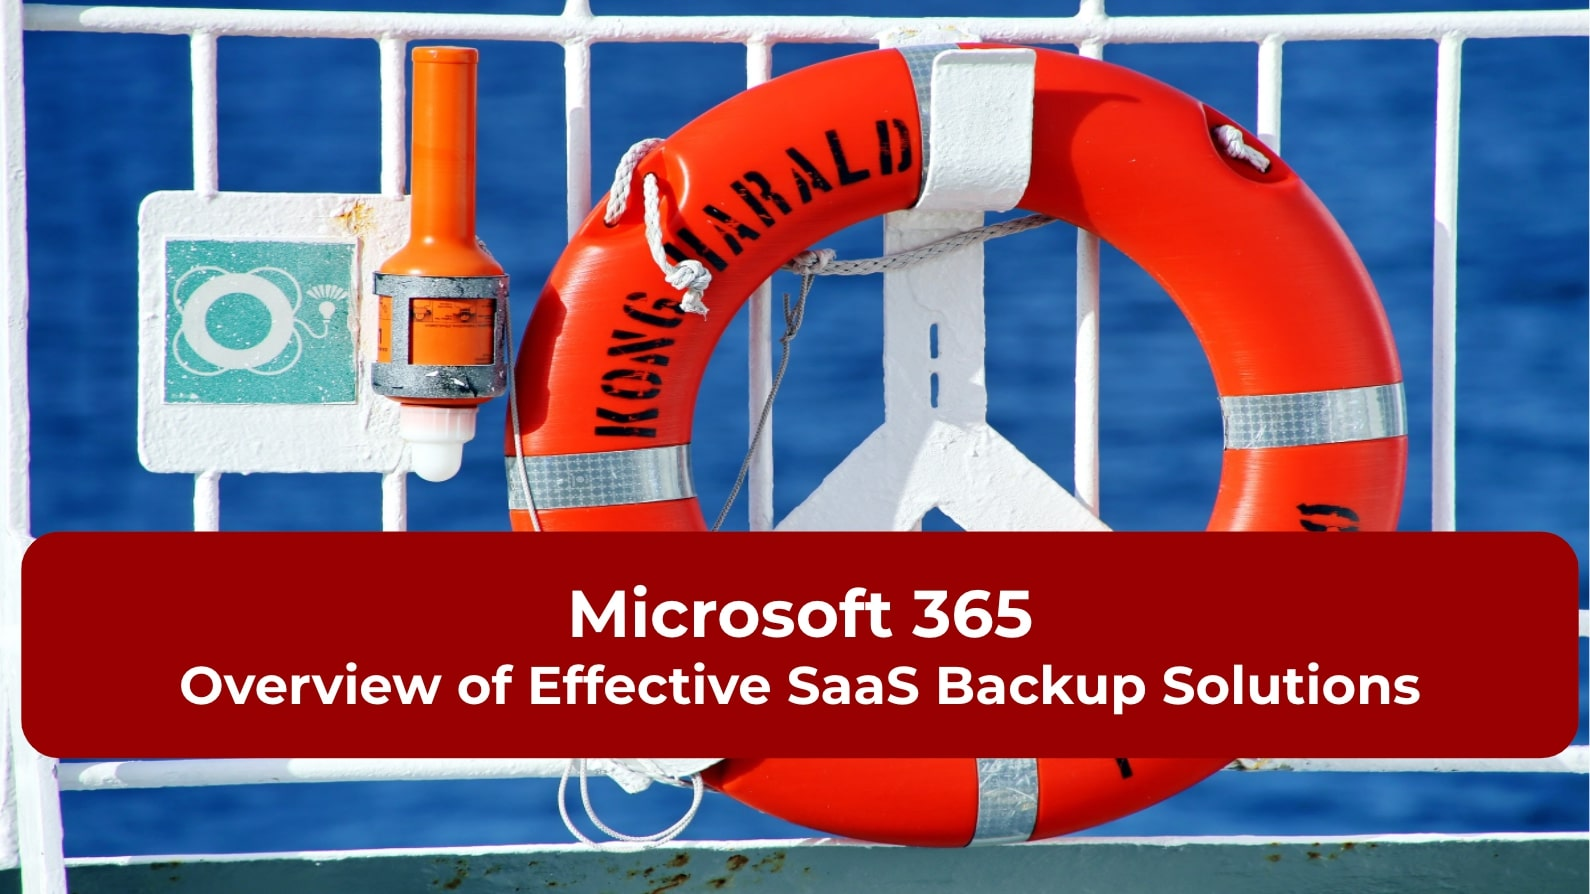 Microsoft 365 Overview of Effective SaaS Backup Solutions